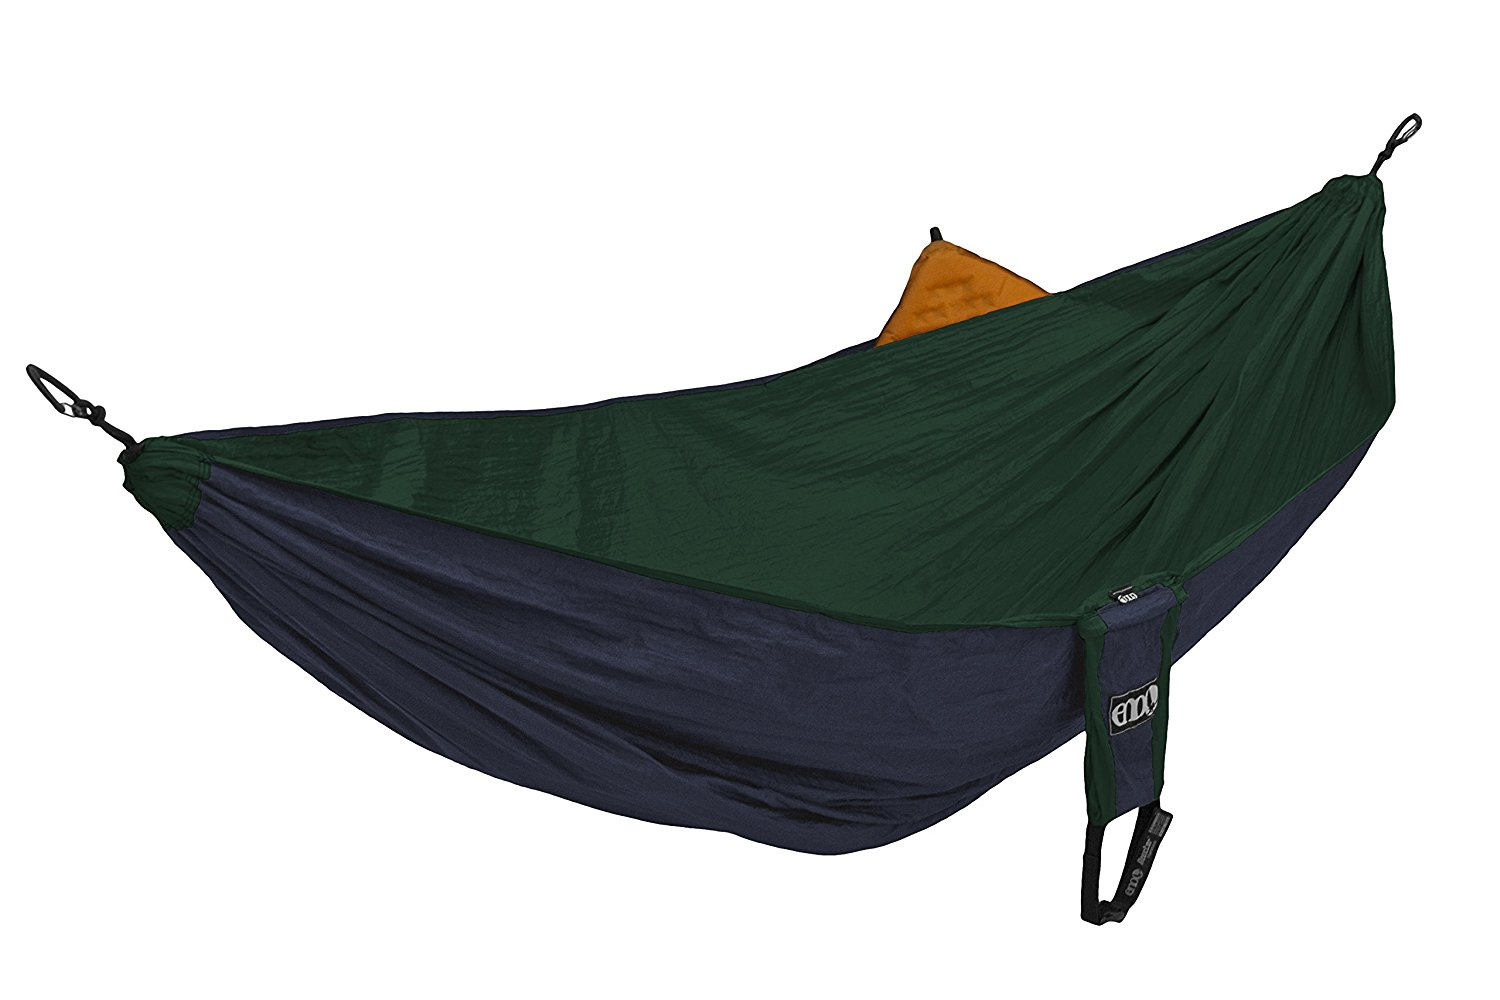 The Best Camping Hammock For Camping And Backpacking